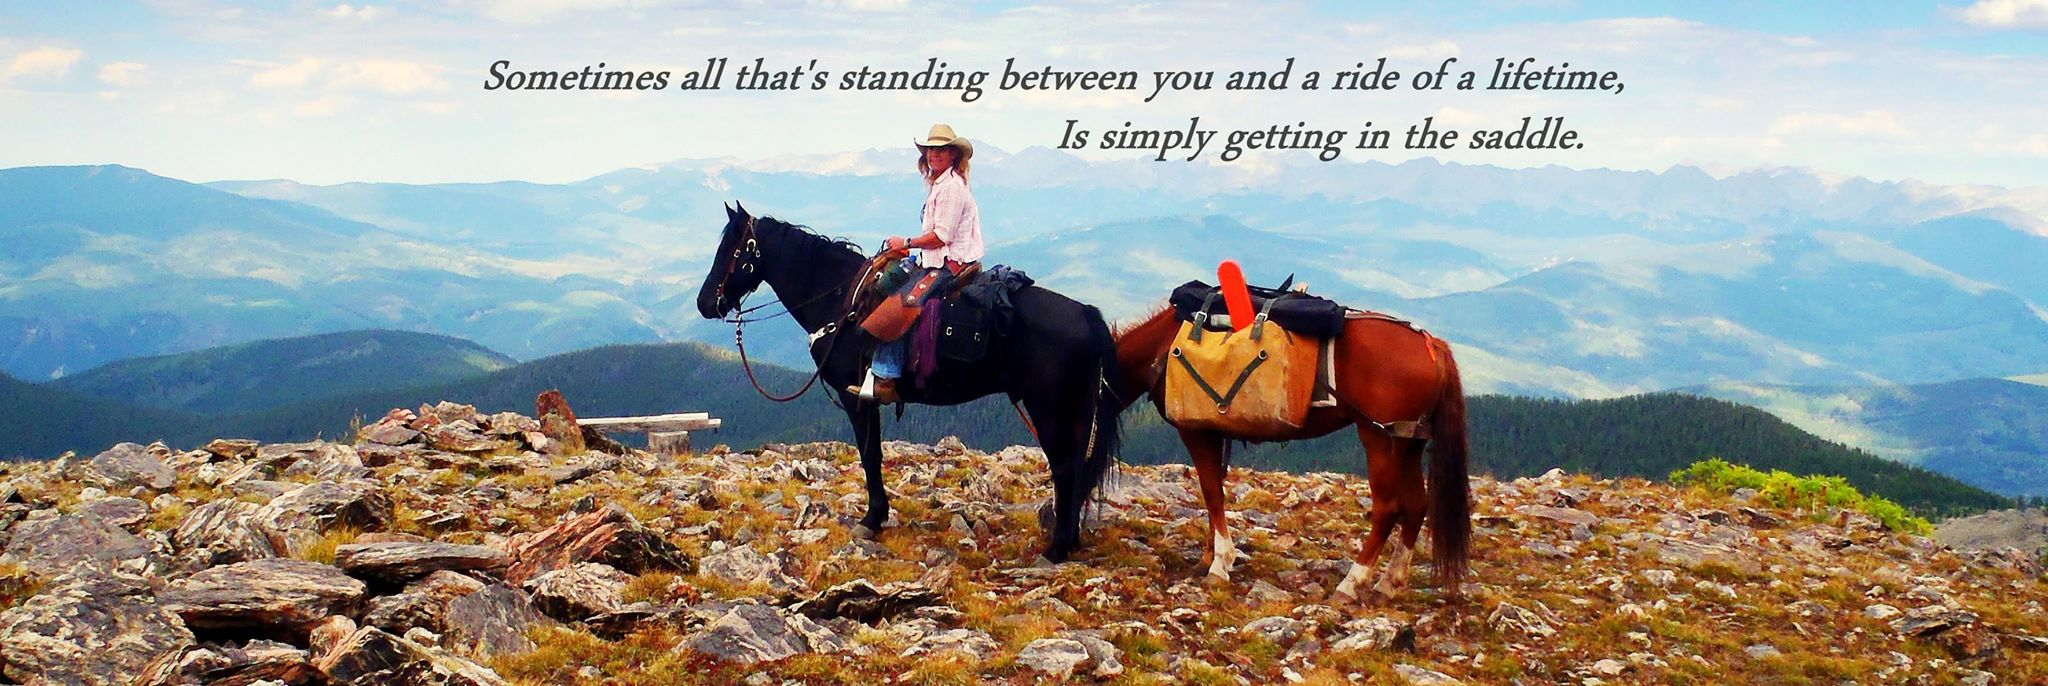 Equitrekking is the Emmy-winning international travel TV show with host Darley Newman. Discover destinations from a local's perspective. Watch travel video. Find horse riding vacations and dude ranches in the Equitrekking Vacation Guide – Travel Tips and watch Equitrekking on Public Television.